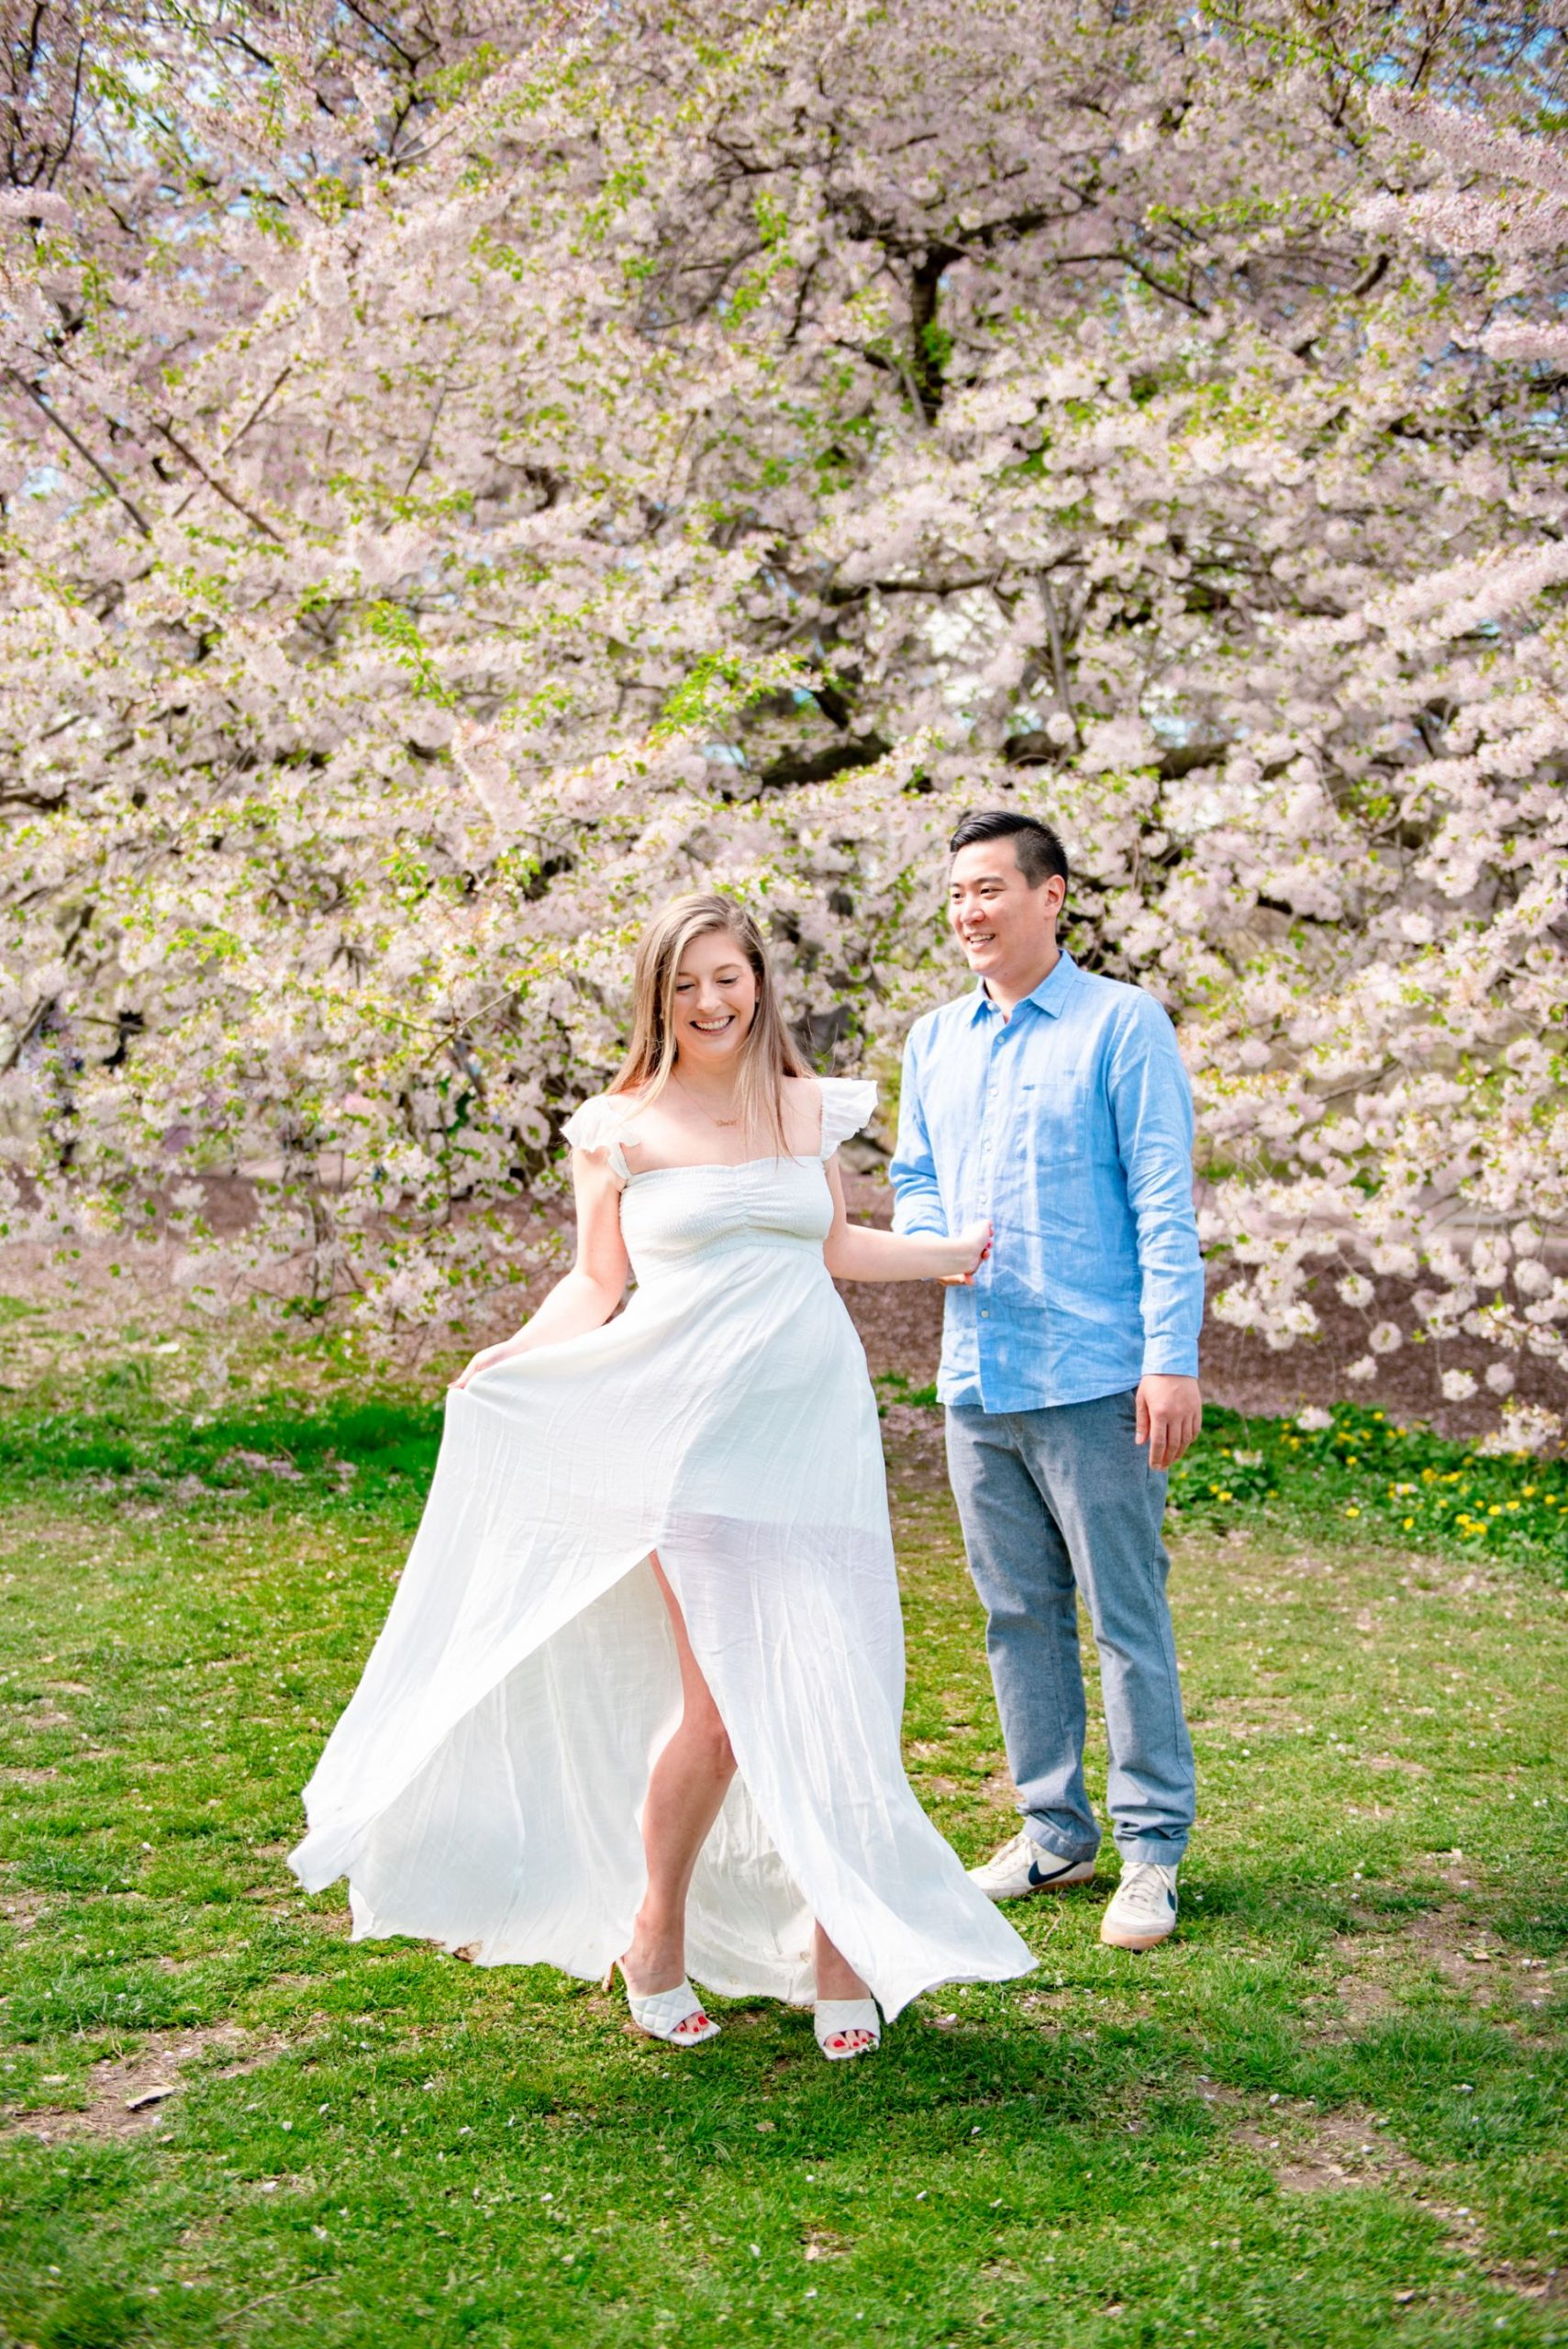 Cherry Hill Central Park NYC Spring Engagement Photoshoot